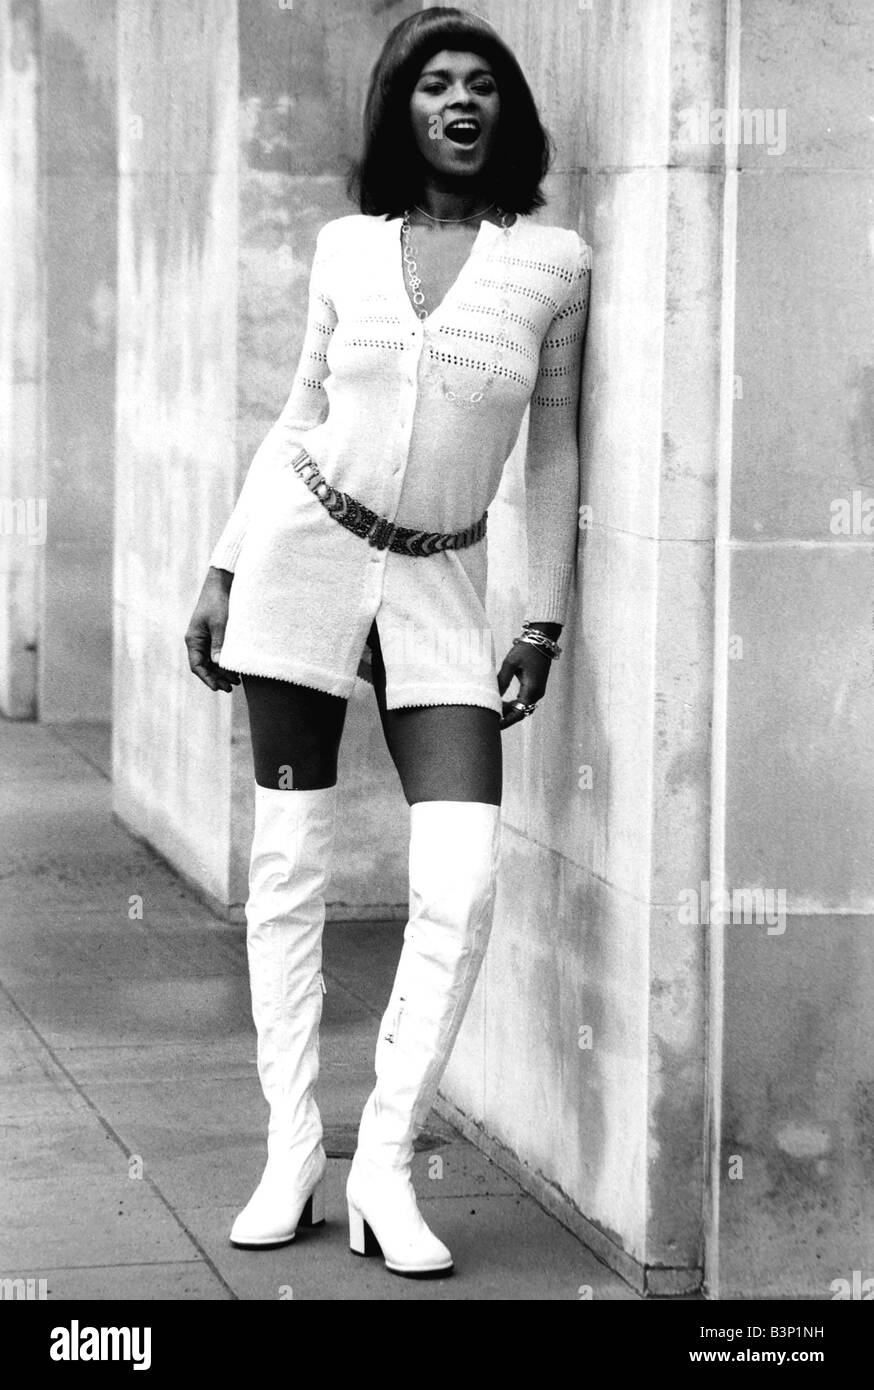 Clothing Fashion Leather White Boots January 1970 Model ...